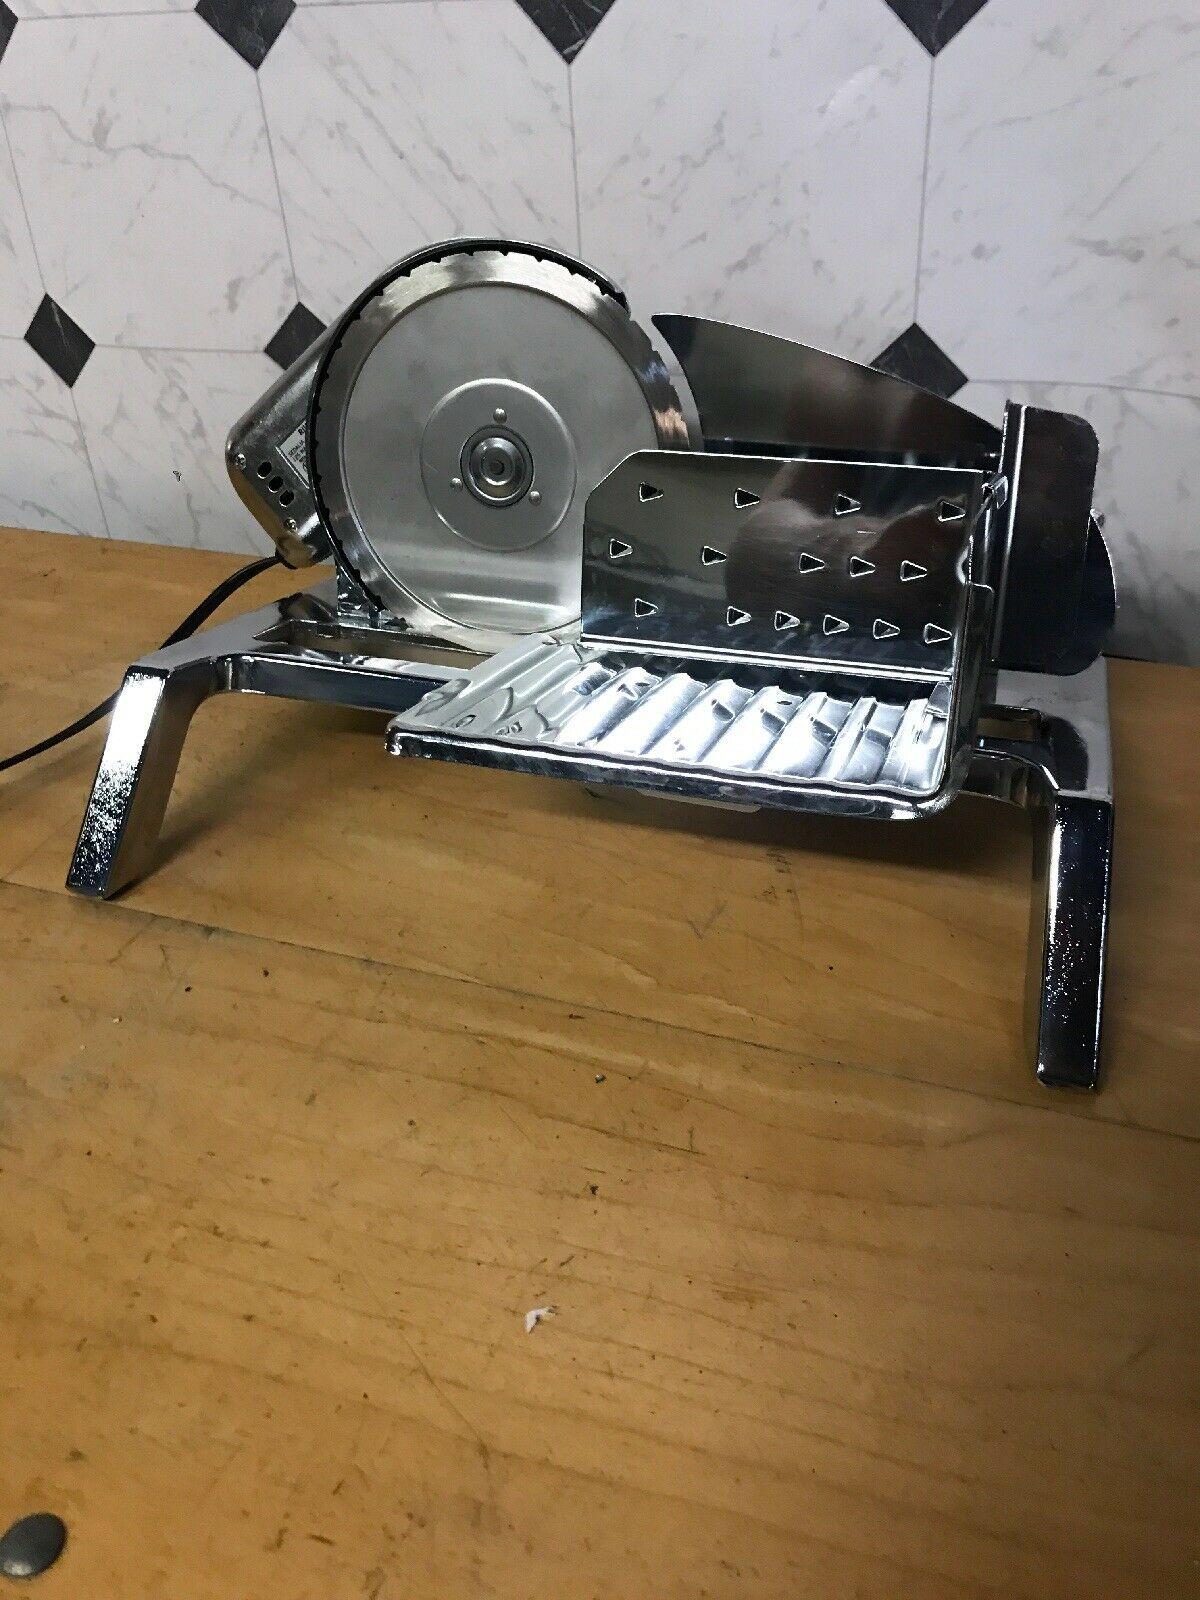 Vintage Rival Electric Meat Deli Food Slicer Model 65301 Tested Working Great